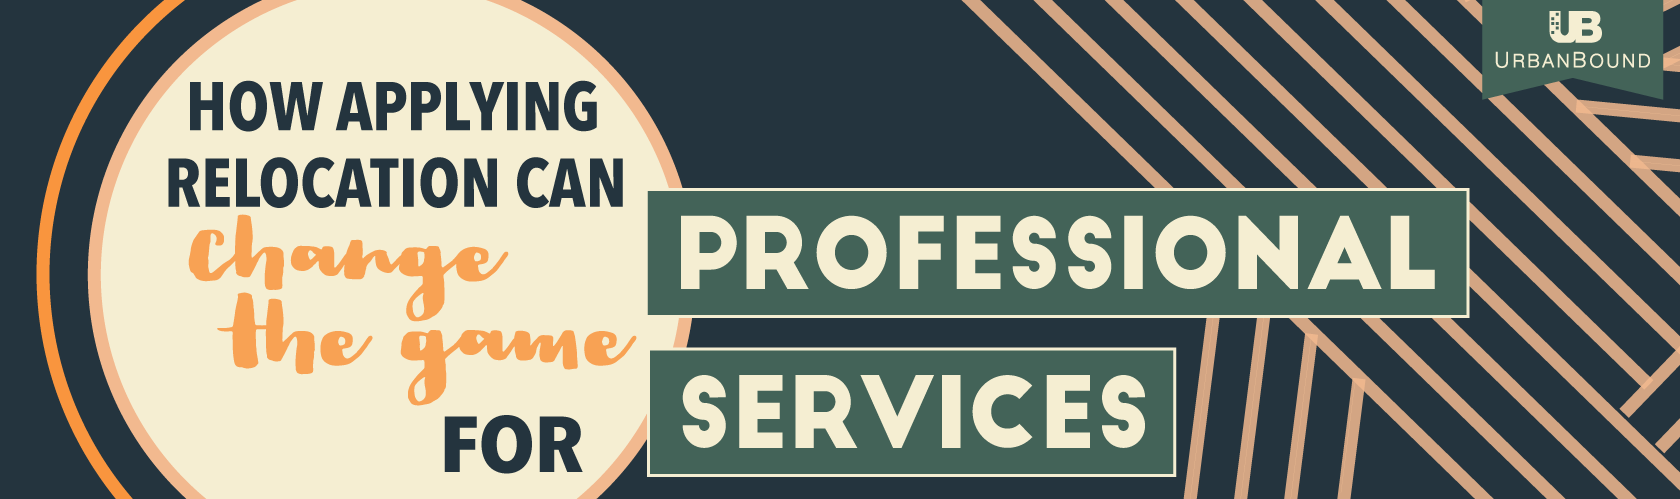 inbcon_collateral_profserv_banner_as16.png